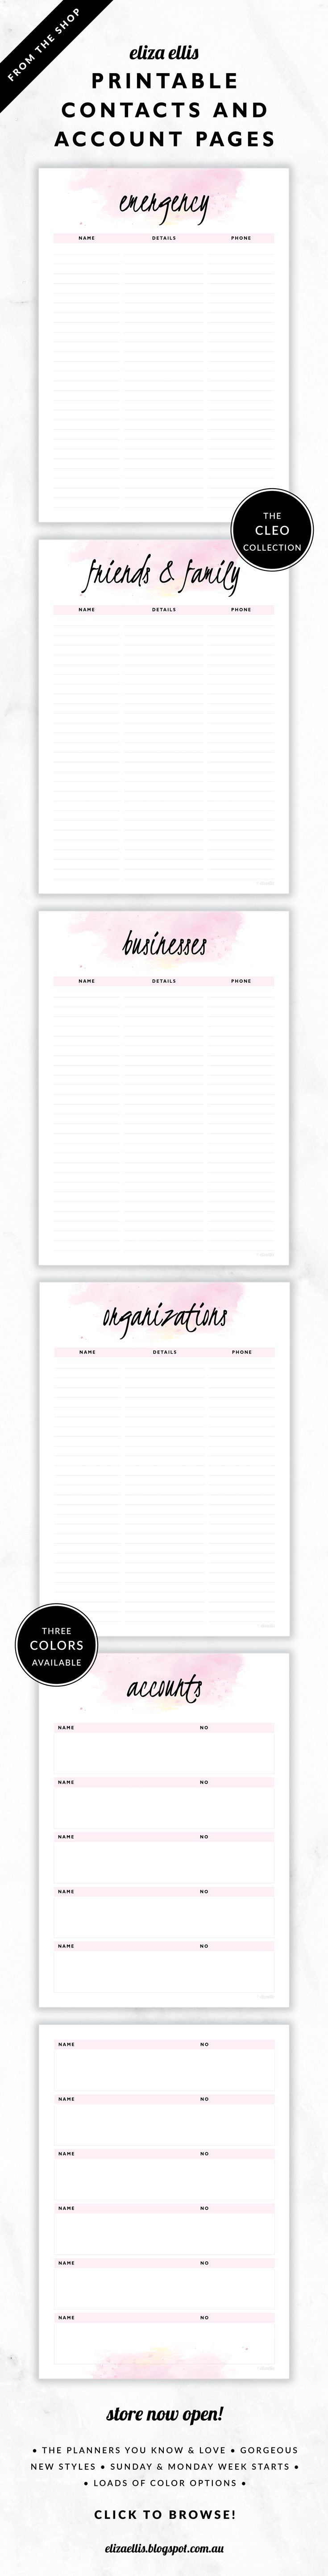 Planner Contacts and Accounts Pages // The Cleo Collection by Eliza Ellis. Gorgeous watercolor and handwritten type design. Available in 3 colors – fairyfloss, nimbus and sherbet. Documents print to A4 or A5.